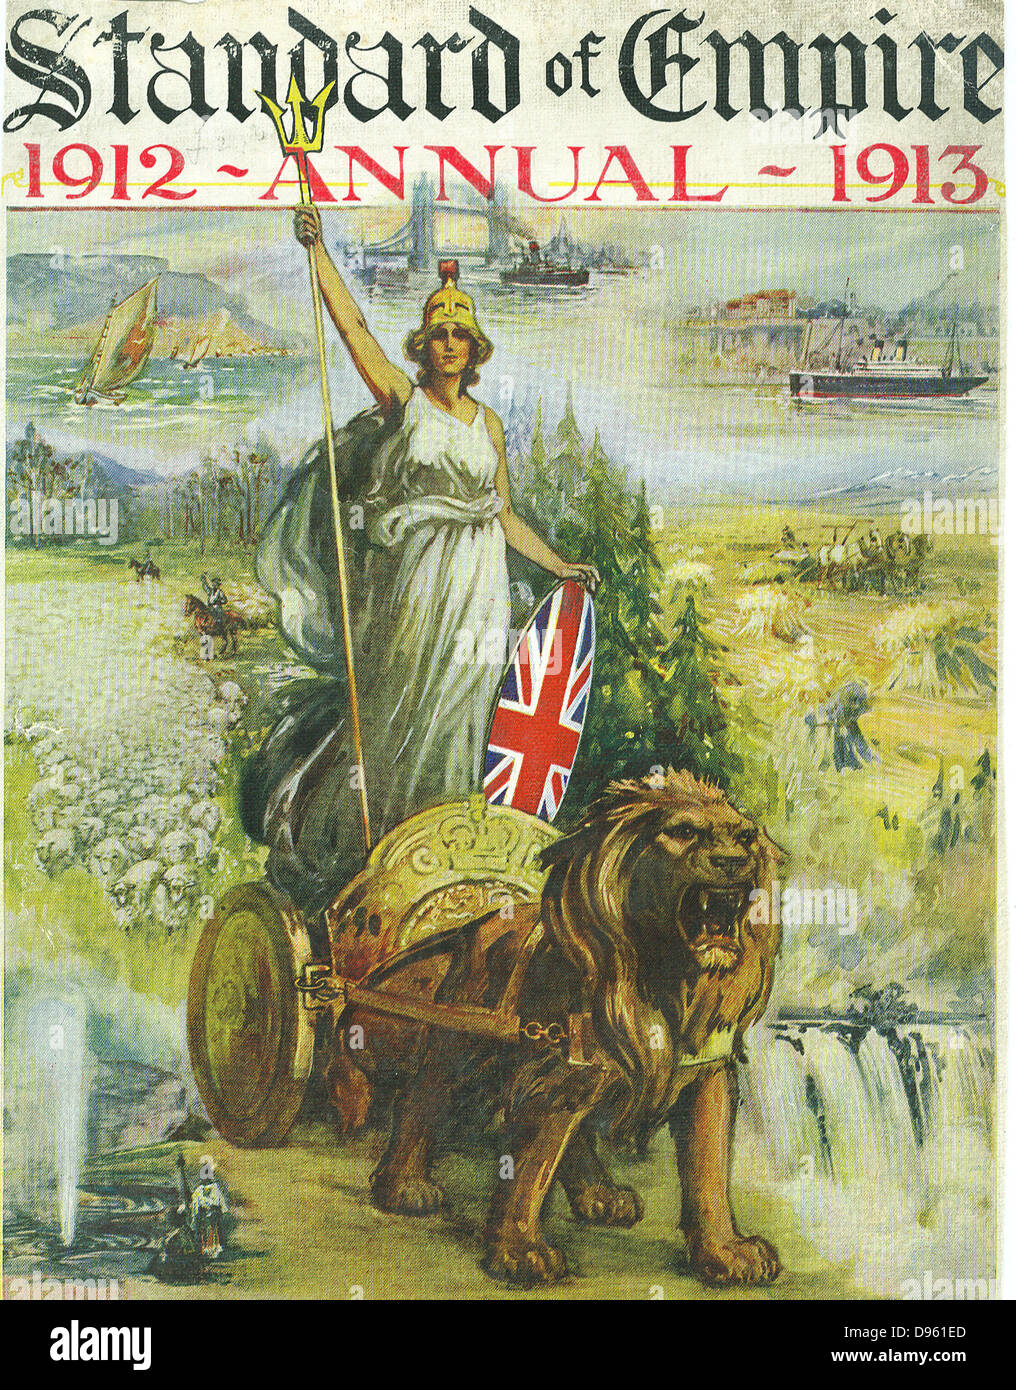 Jingoistic cover of the 'Standard of Empire' Annual for 1912-1913 showing Britannia in a chariot drawn by - Stock Image